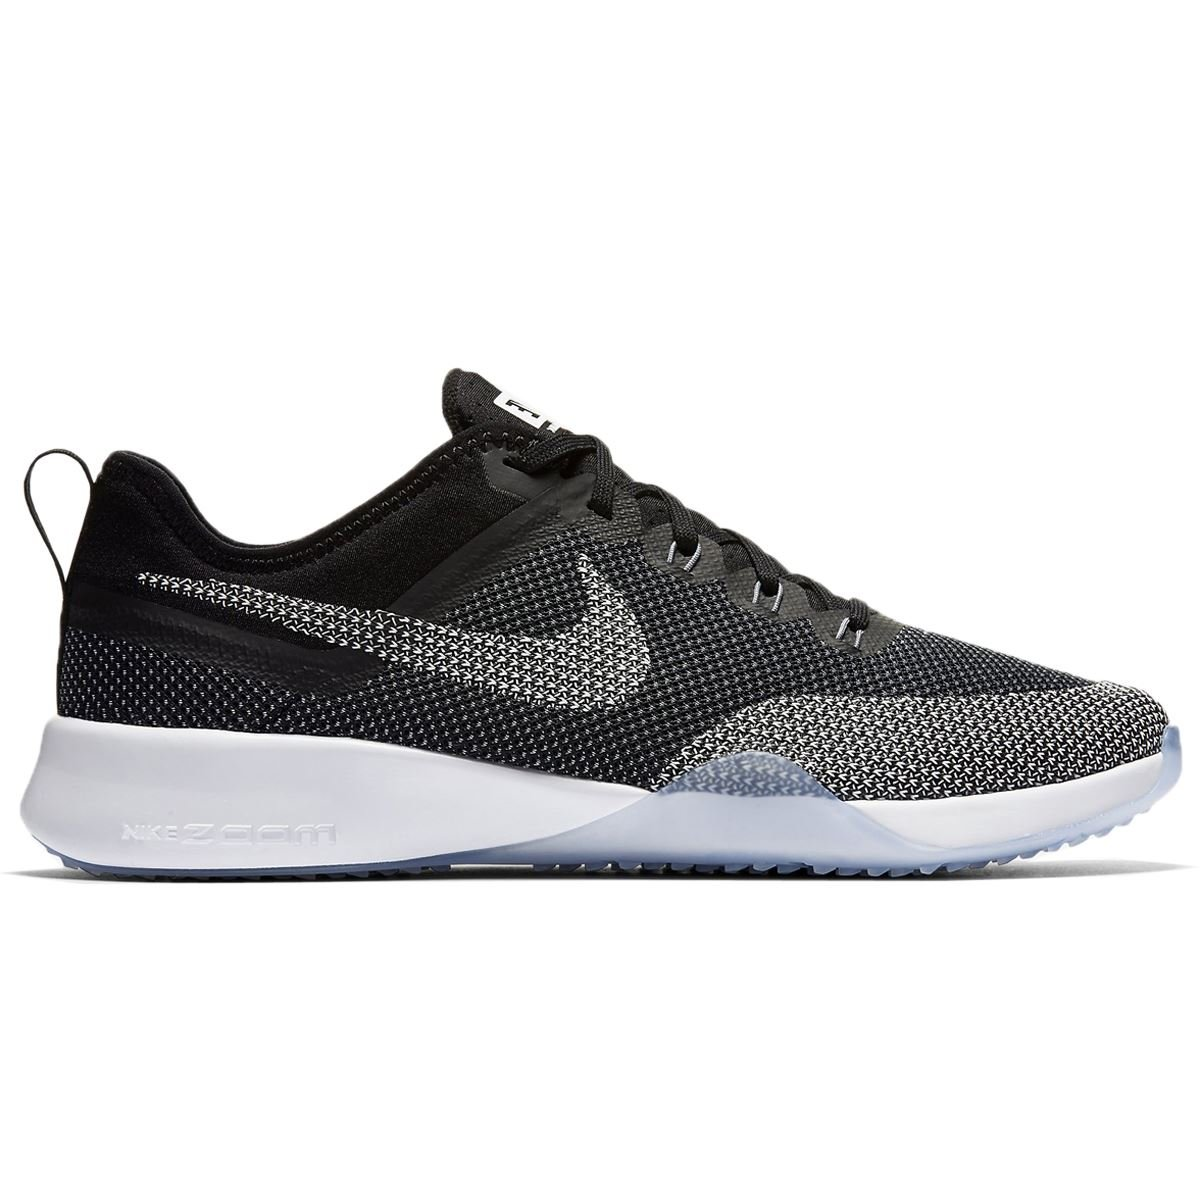 NIKE B01LY01MBF Women's Air Zoom Dynamic Training Shoe B01LY01MBF NIKE 6.5 B(M) US|Black/White/Cool Grey 461ce3